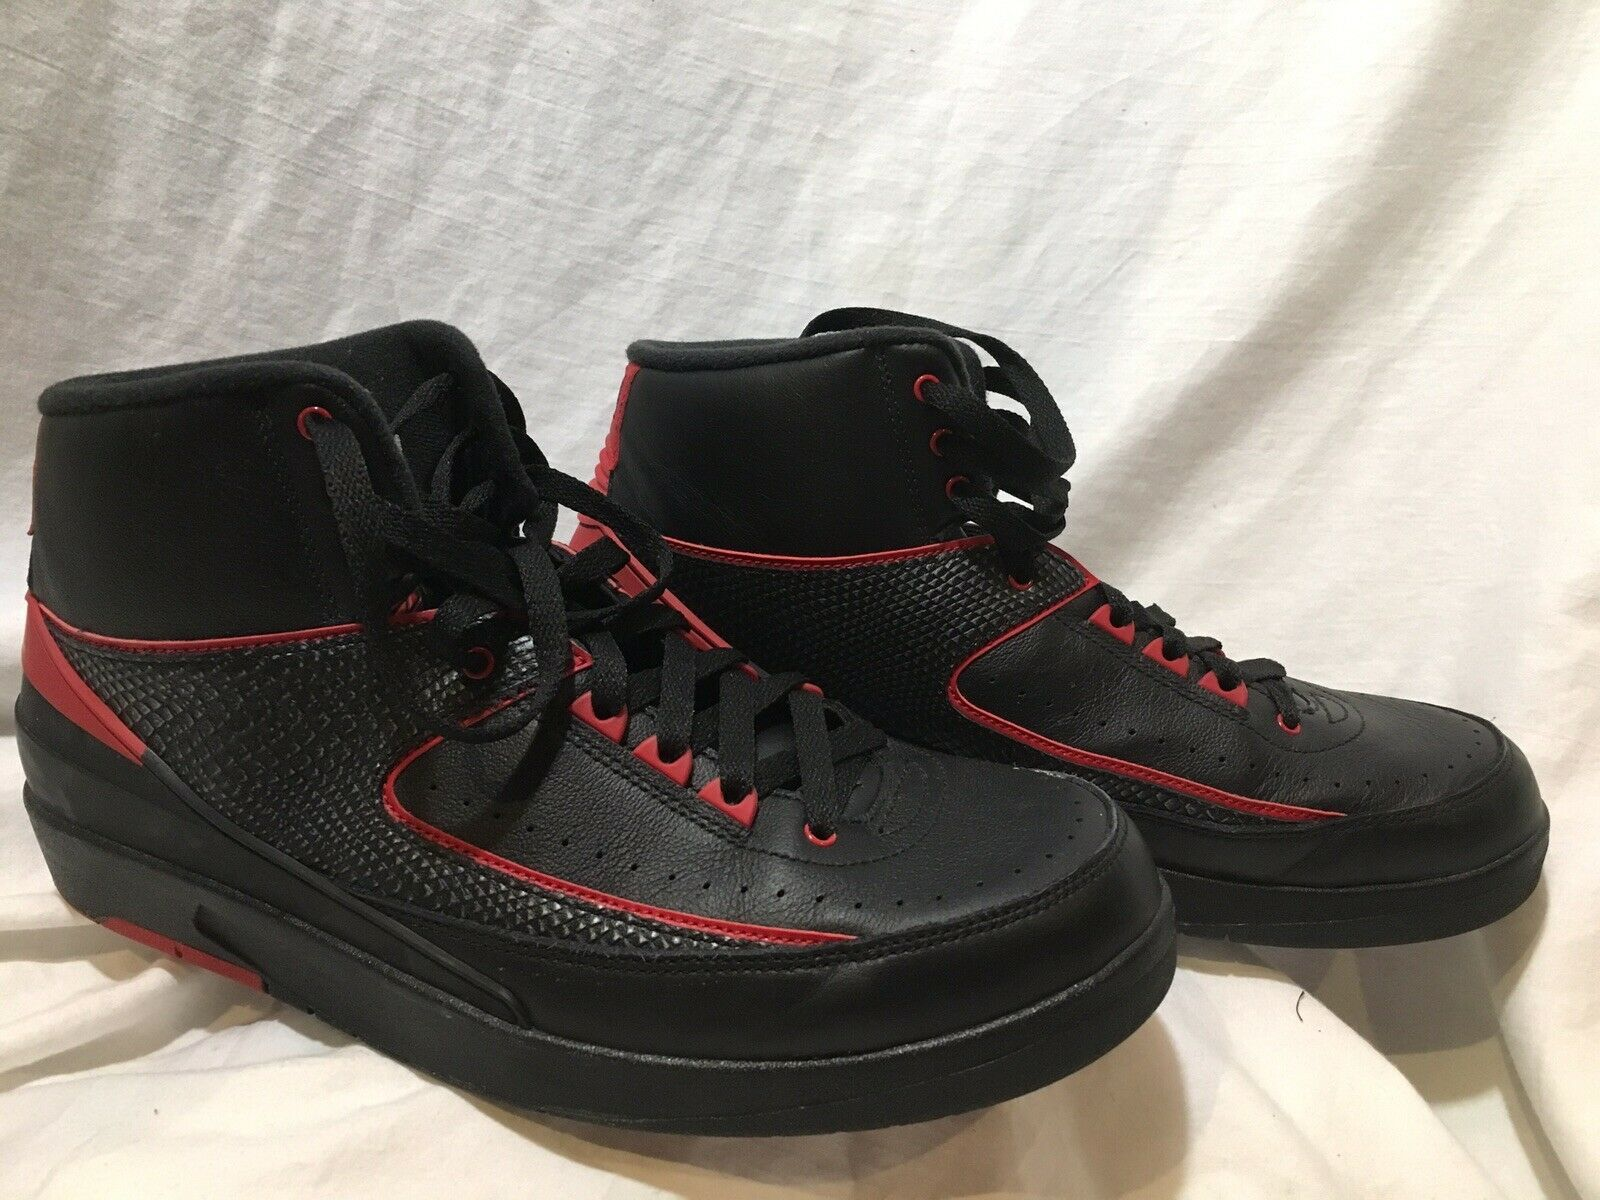 f2ed71cf755 S l1600. S l1600. Previous. Nike Air Jordan 2 II Retro Alternate 87 Black  Varsity Red 834274-001 Size 11.5